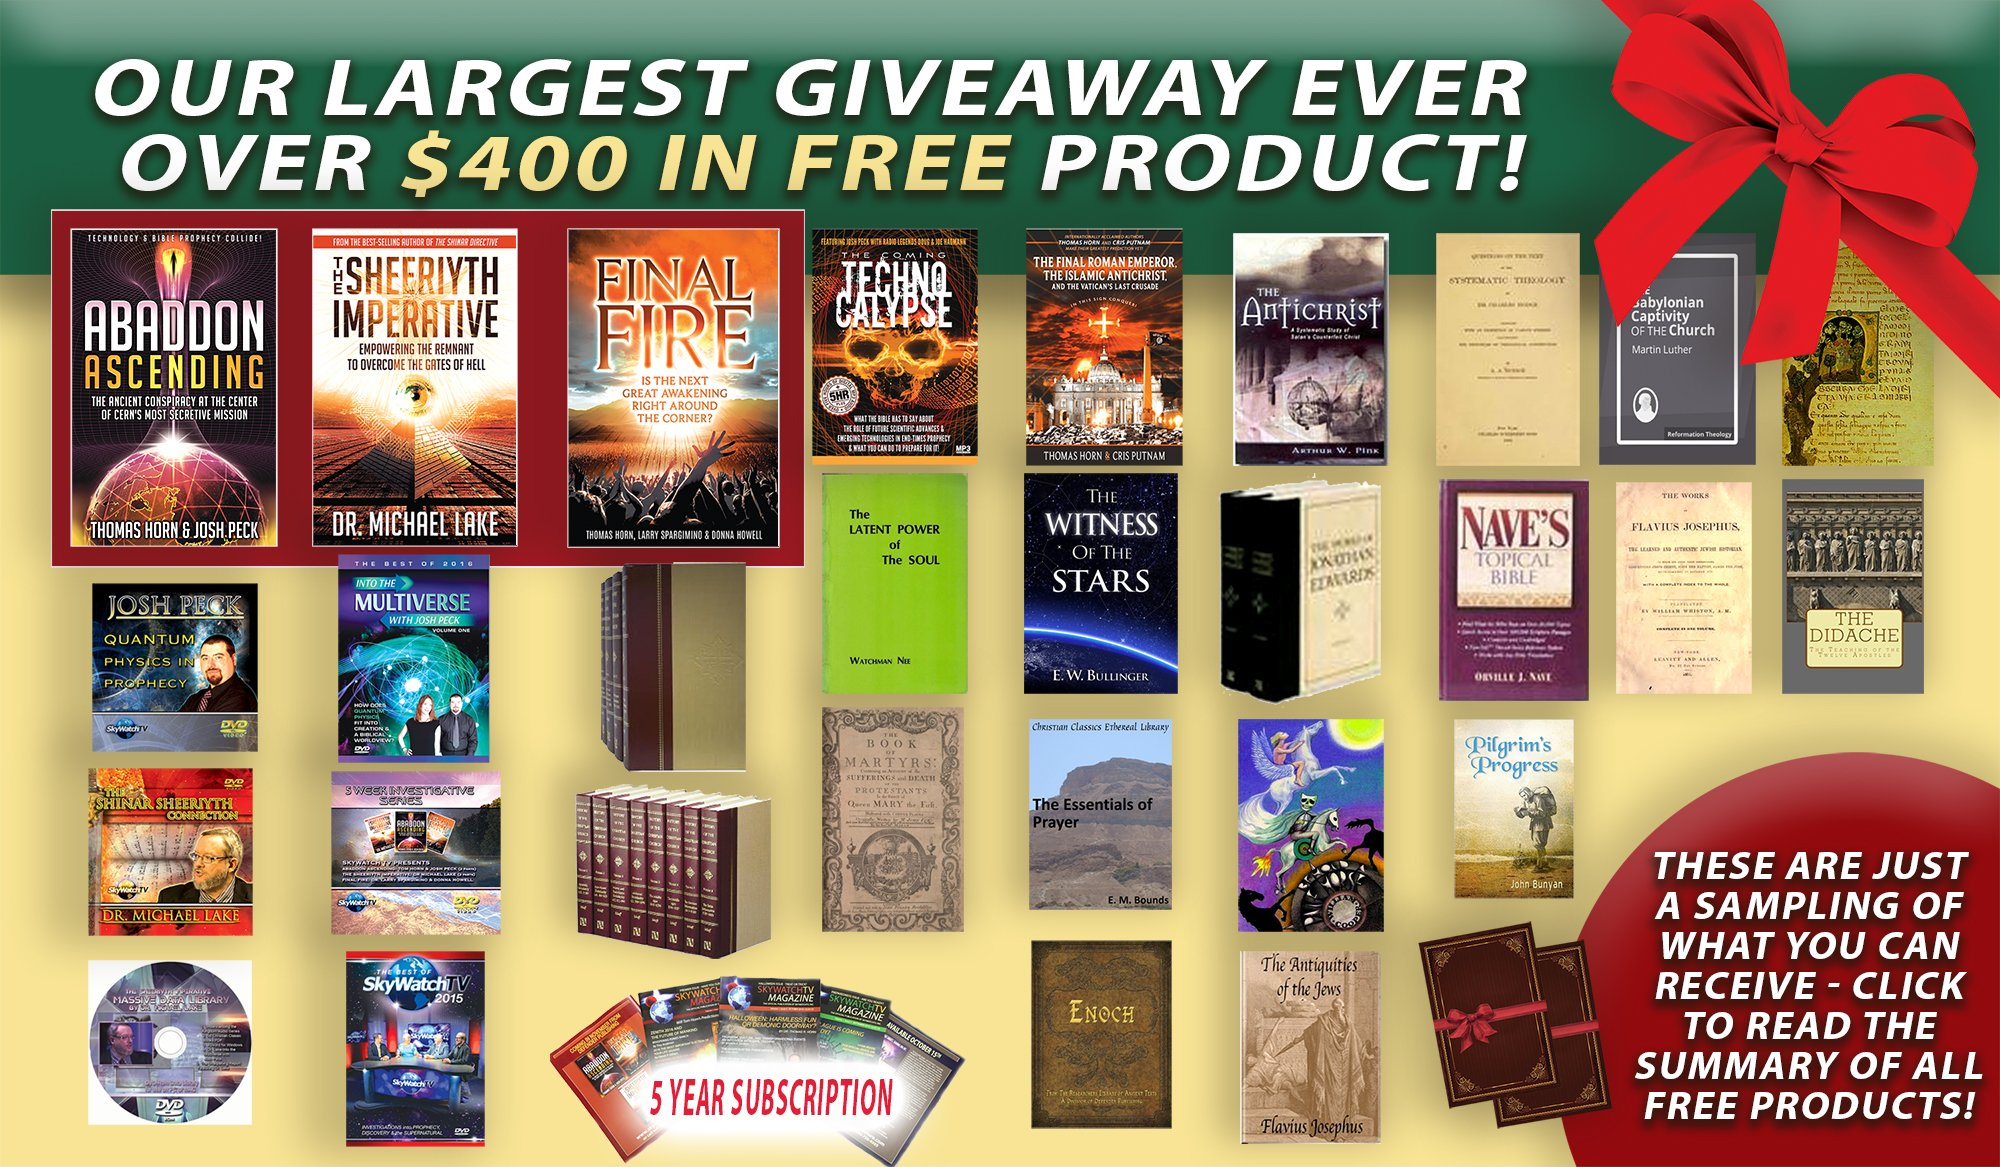 BE ADVISED! TIME IS RUNNING OUT TO GET THE BIGGEST GIVEAWAY IN SKYWATCH HISTORY! OVER $400.00 IN FREE PROPHECY BOOKS, FREE DVDS, FREE AUDIO SETS, FREE SOFTWARE, FREE E-BOOKS, FREE MAGAZINE SUBSCRIPTIONS AND MUCH MORE!